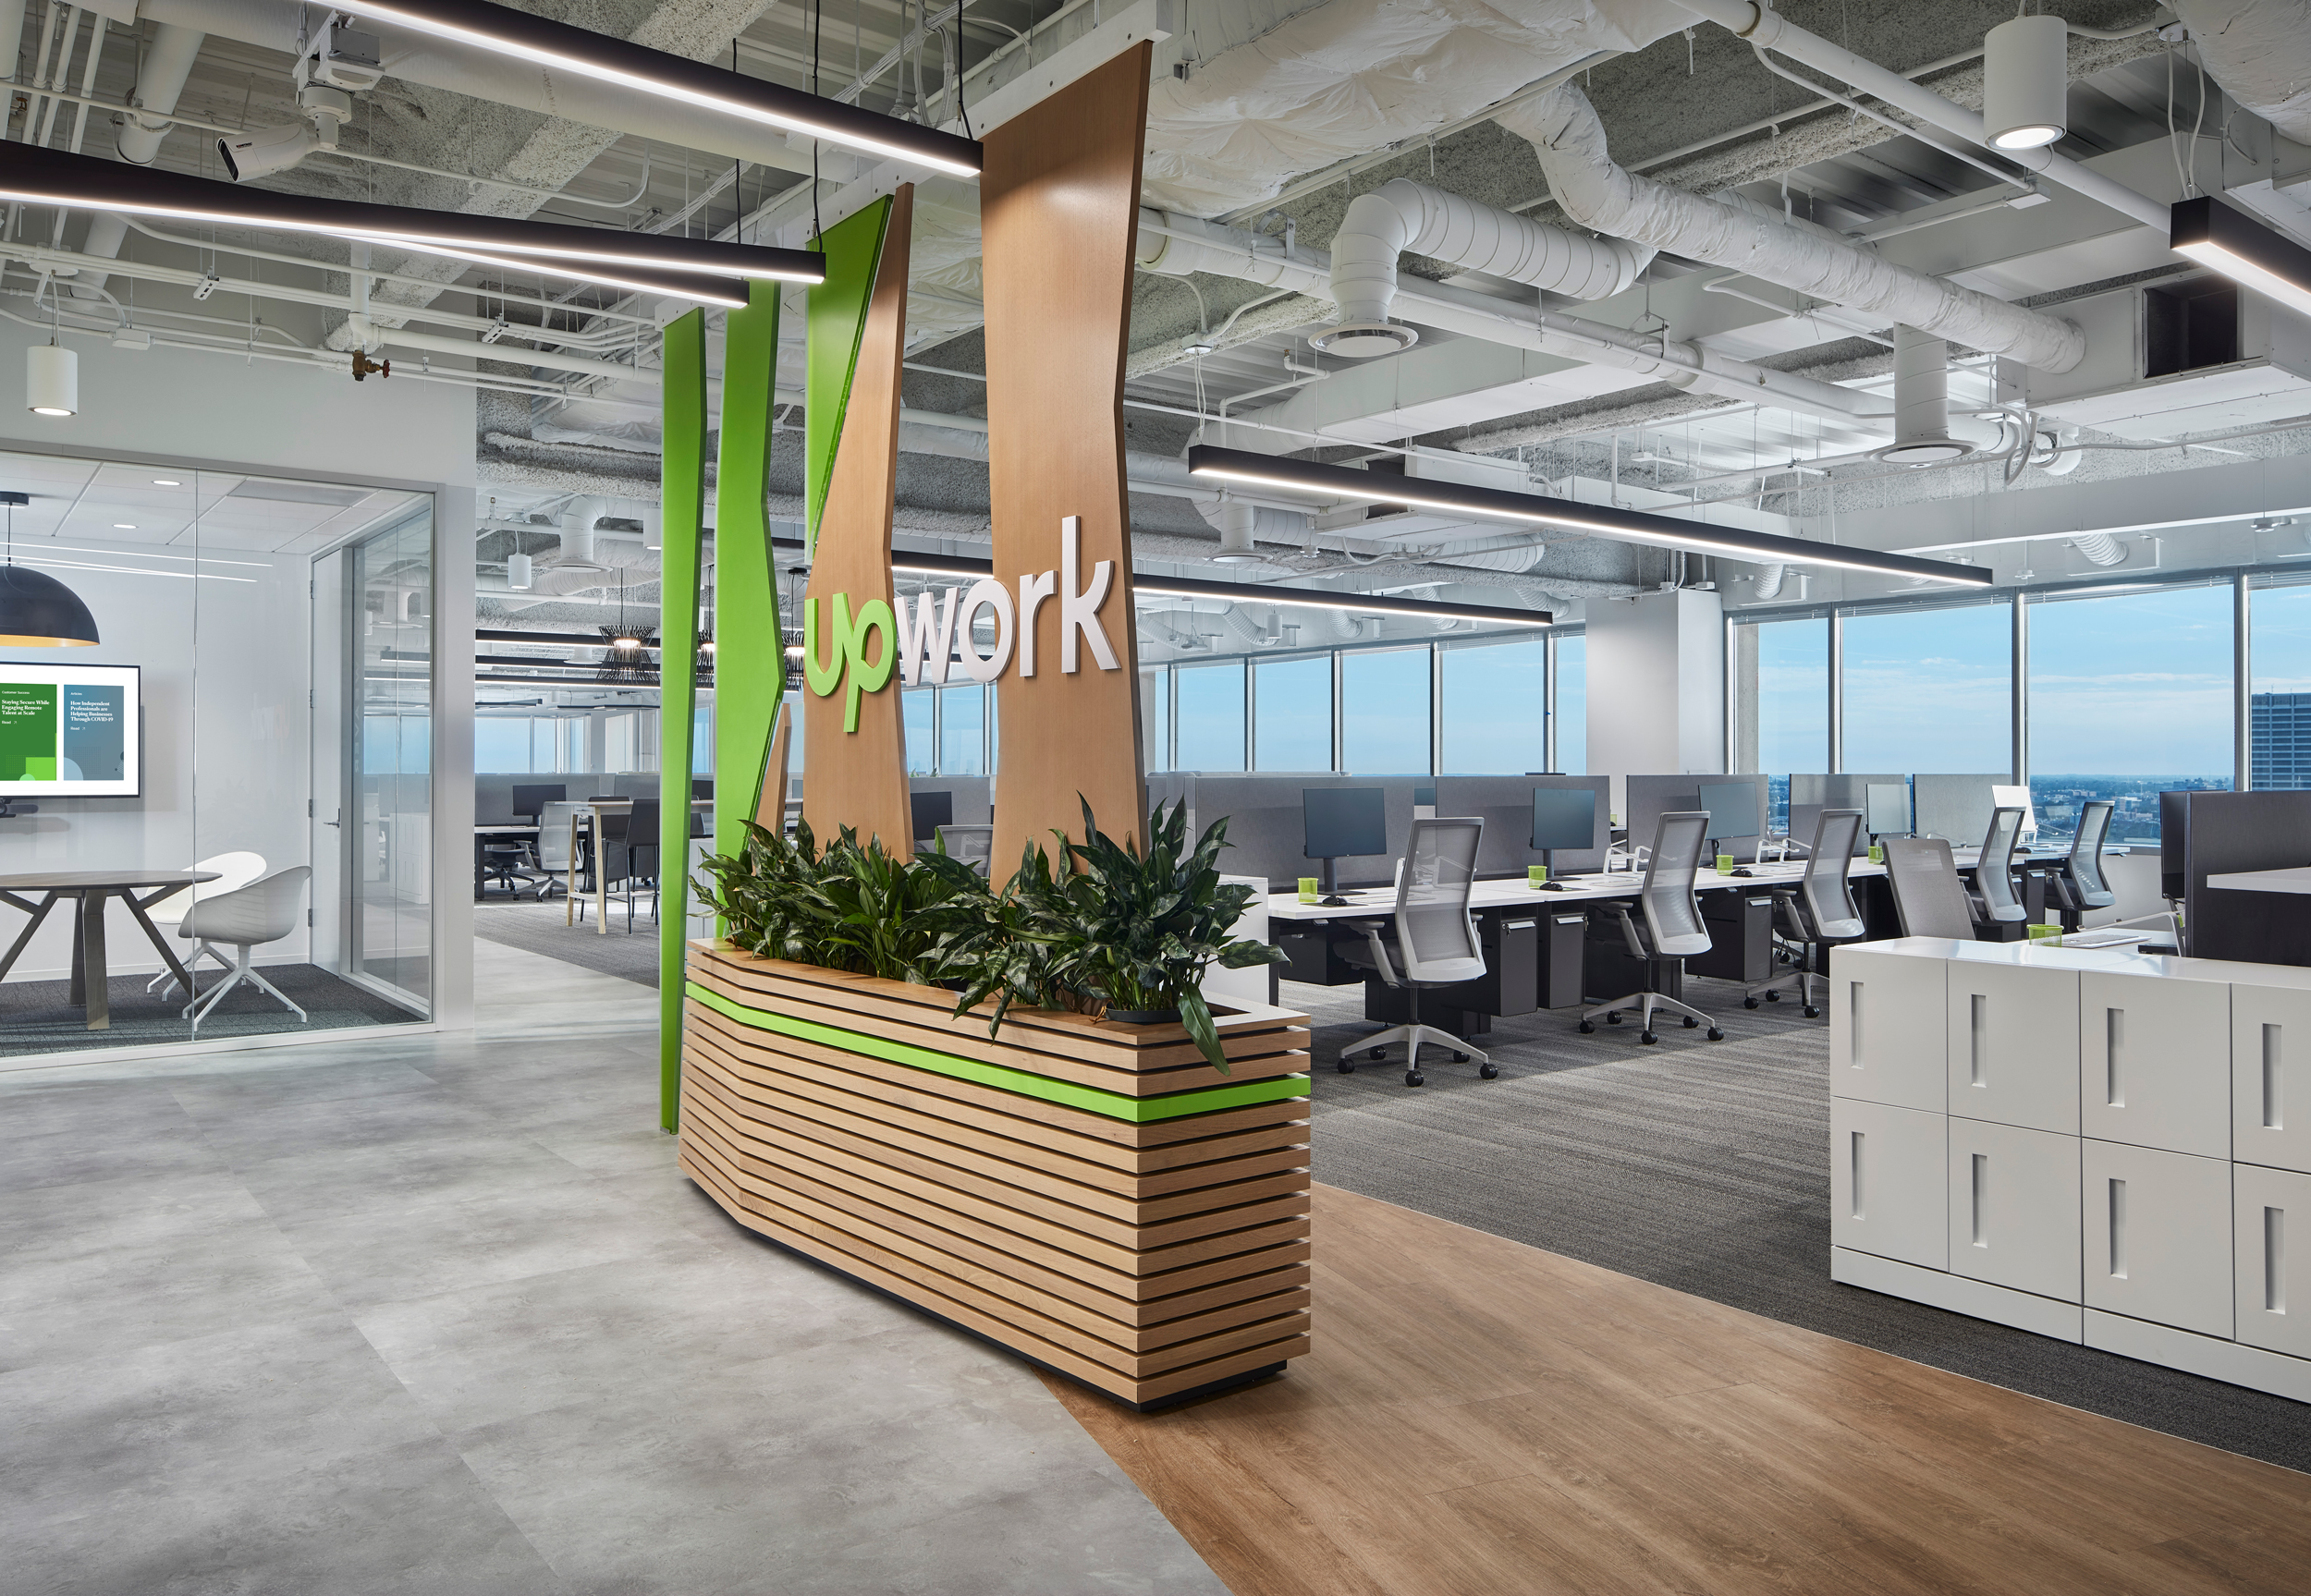 Skender Completes Interior Construction to Expand Upwork's Chicago Office